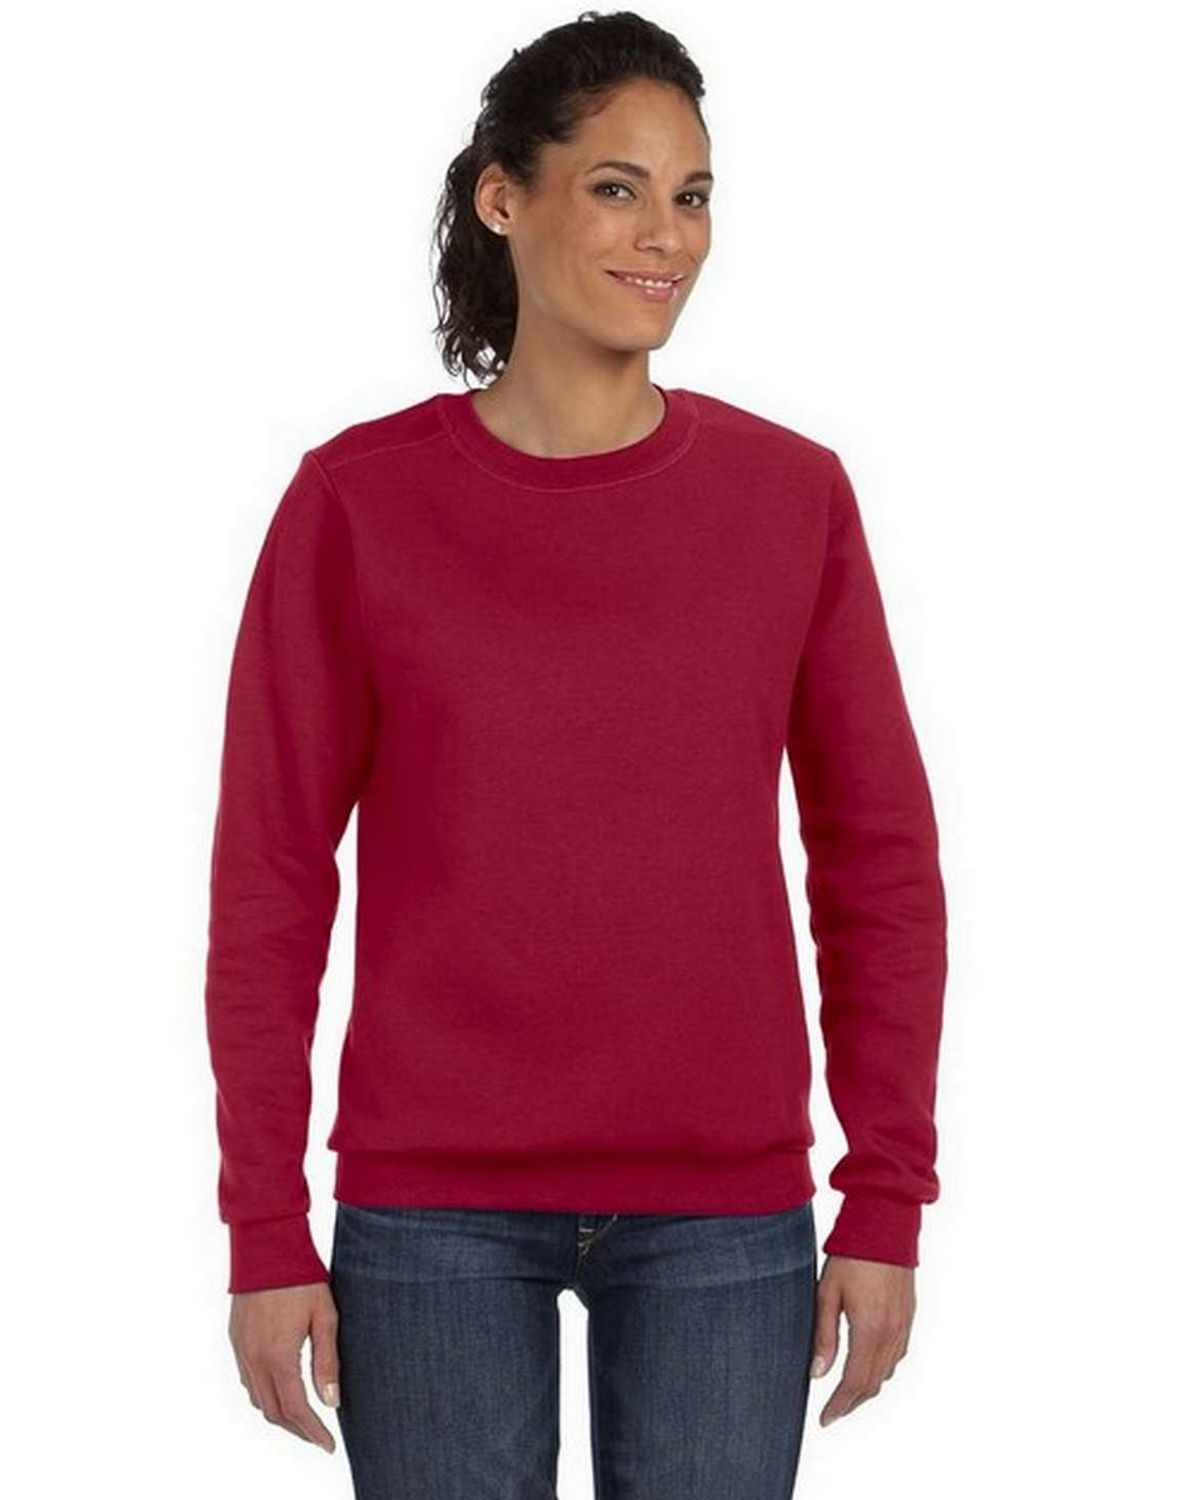 Anvil 71000L Combed Ringspun Fashion Fleece Crew Neck Sweatshirt - Independence Red - M 71000L